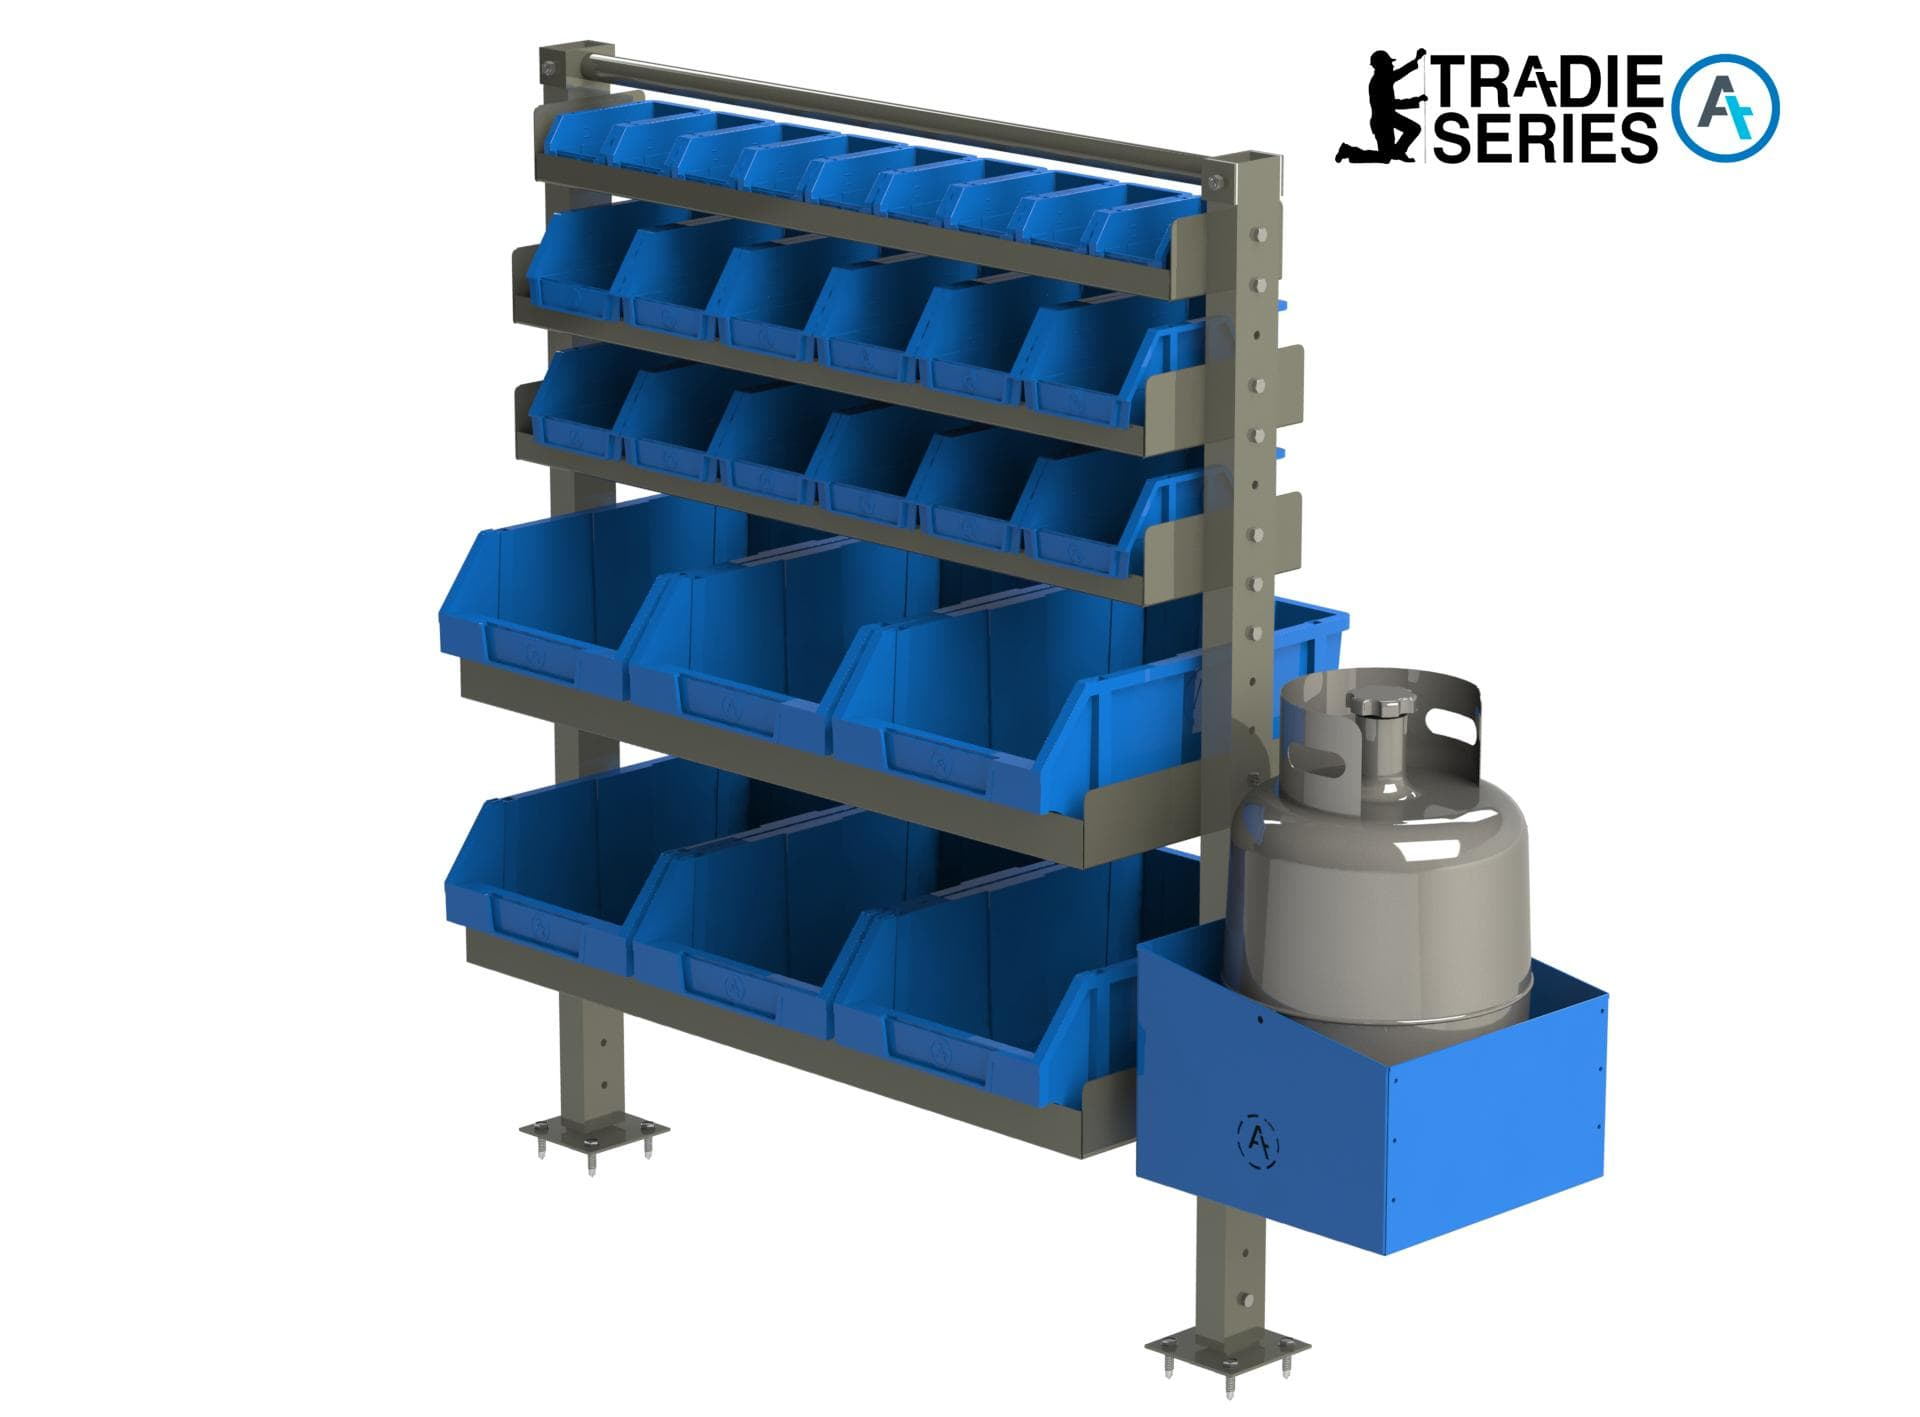 Trade Shelving kg Gas Bottle Holder